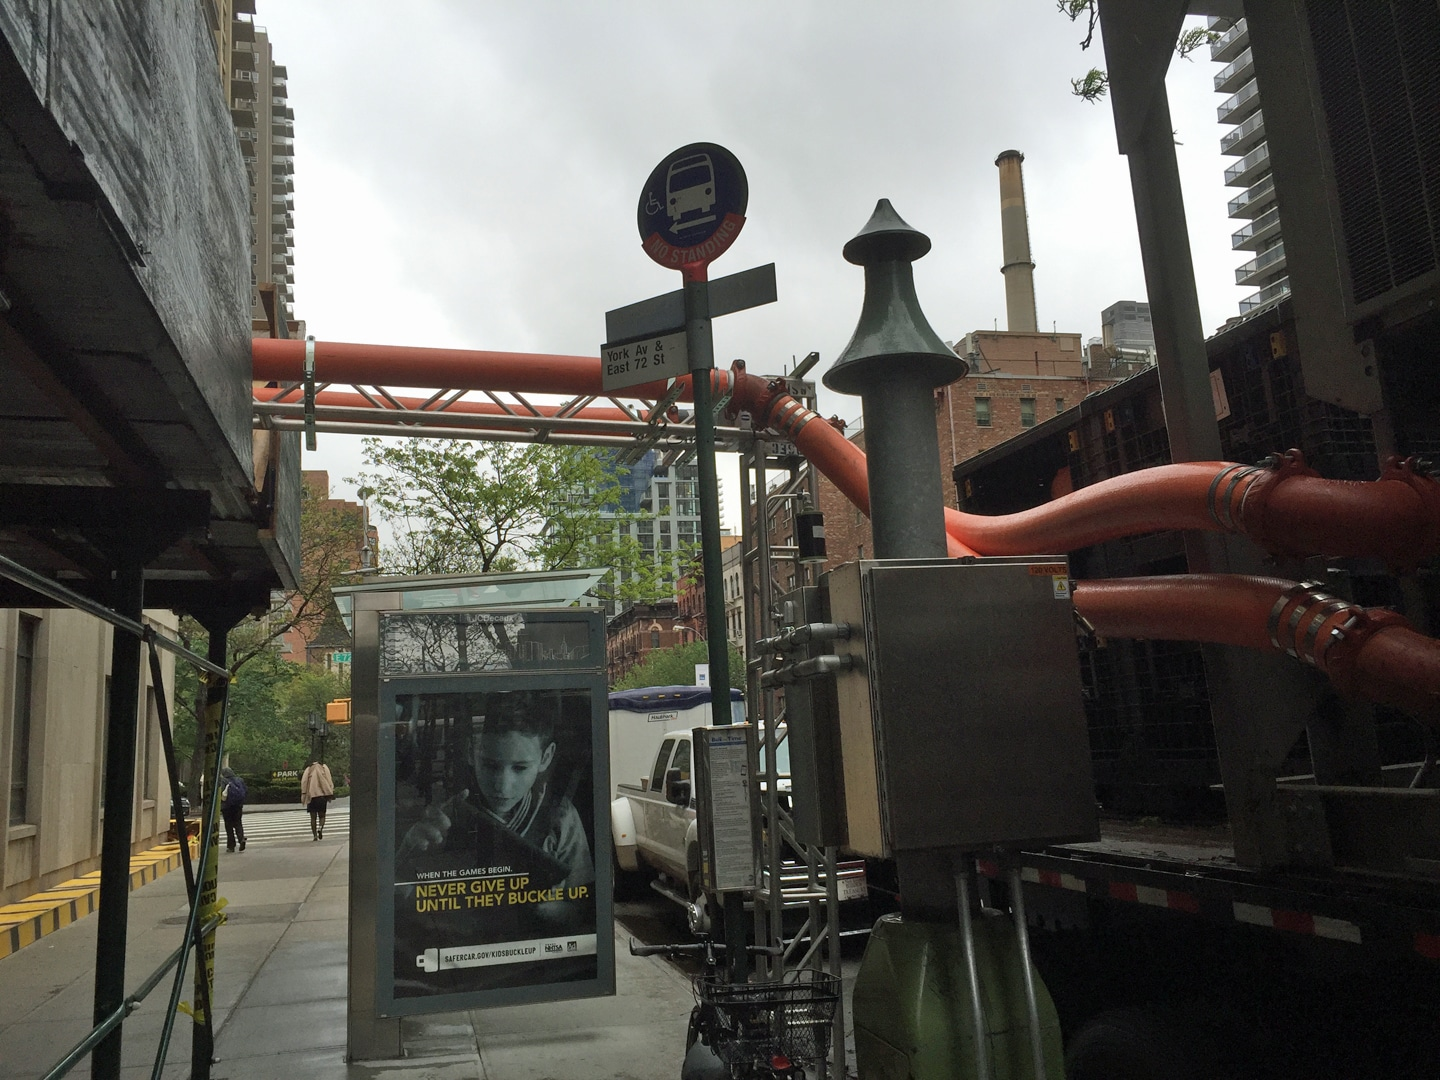 Rental Chiller Installation CT , Rental Chiller Installation NYC , Chiller AC Rental NY , Chiller AC Rental Philly